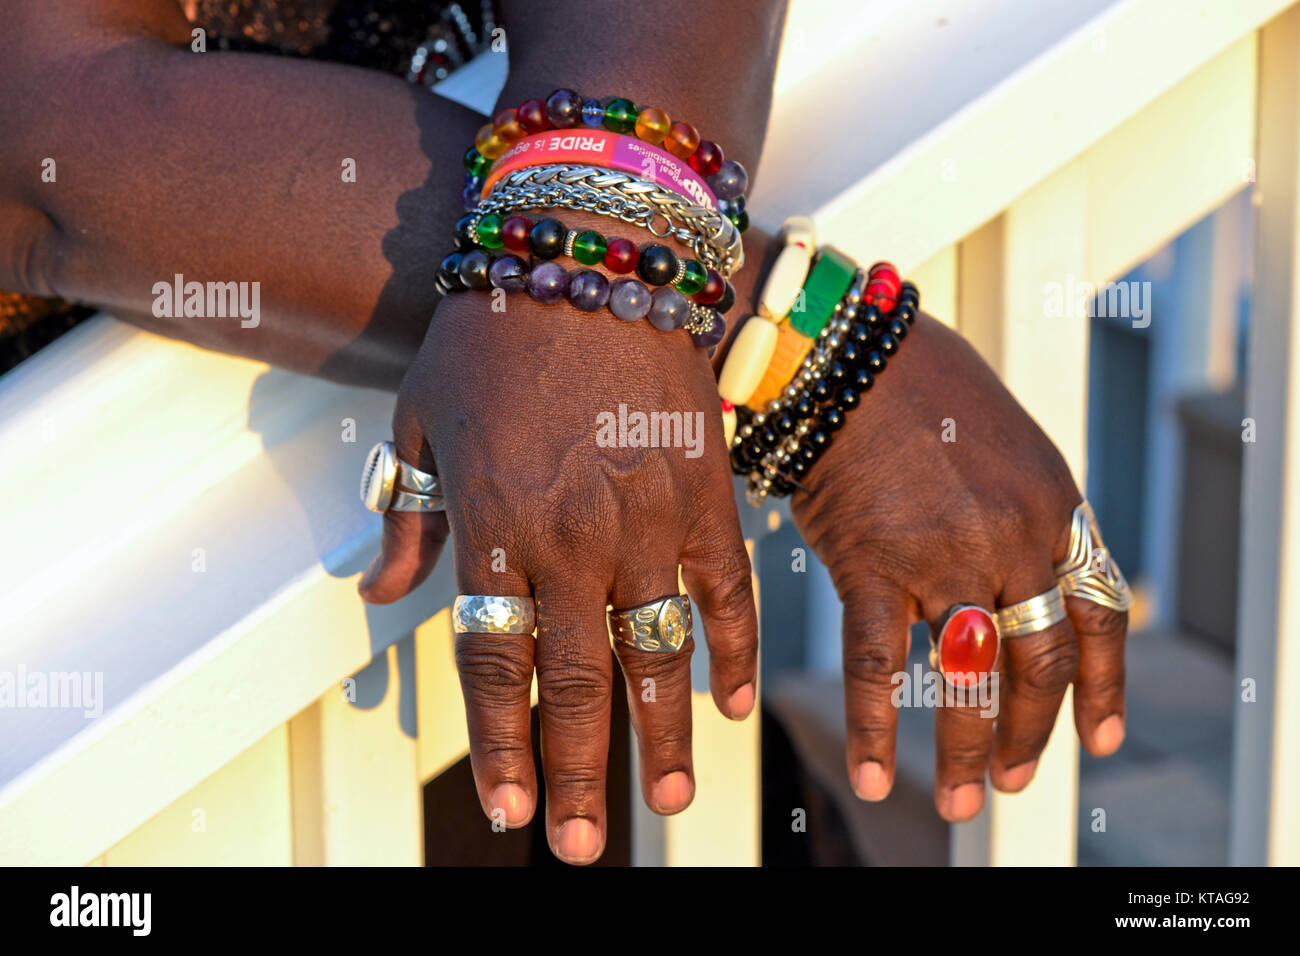 African-American woman wearing an assortment of colorful jewelry - Stock Image